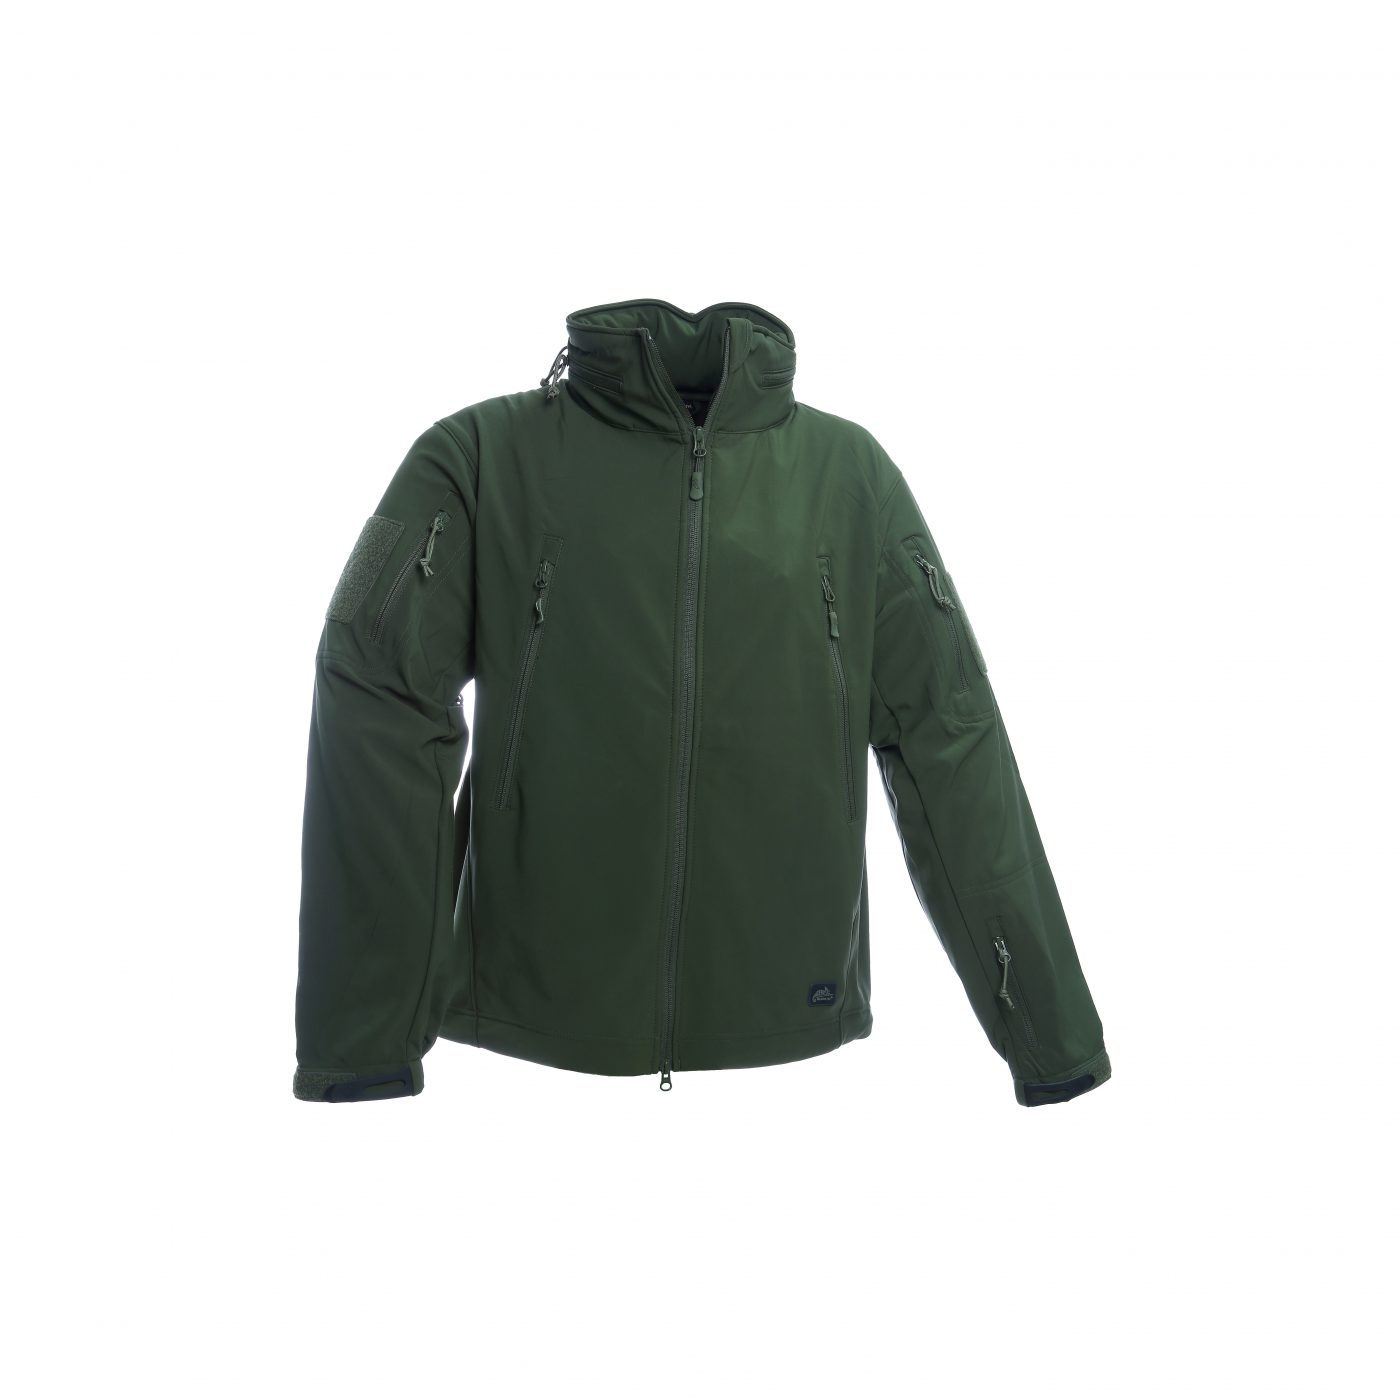 Куртка Gunfighter Jacket Helikon-Tex